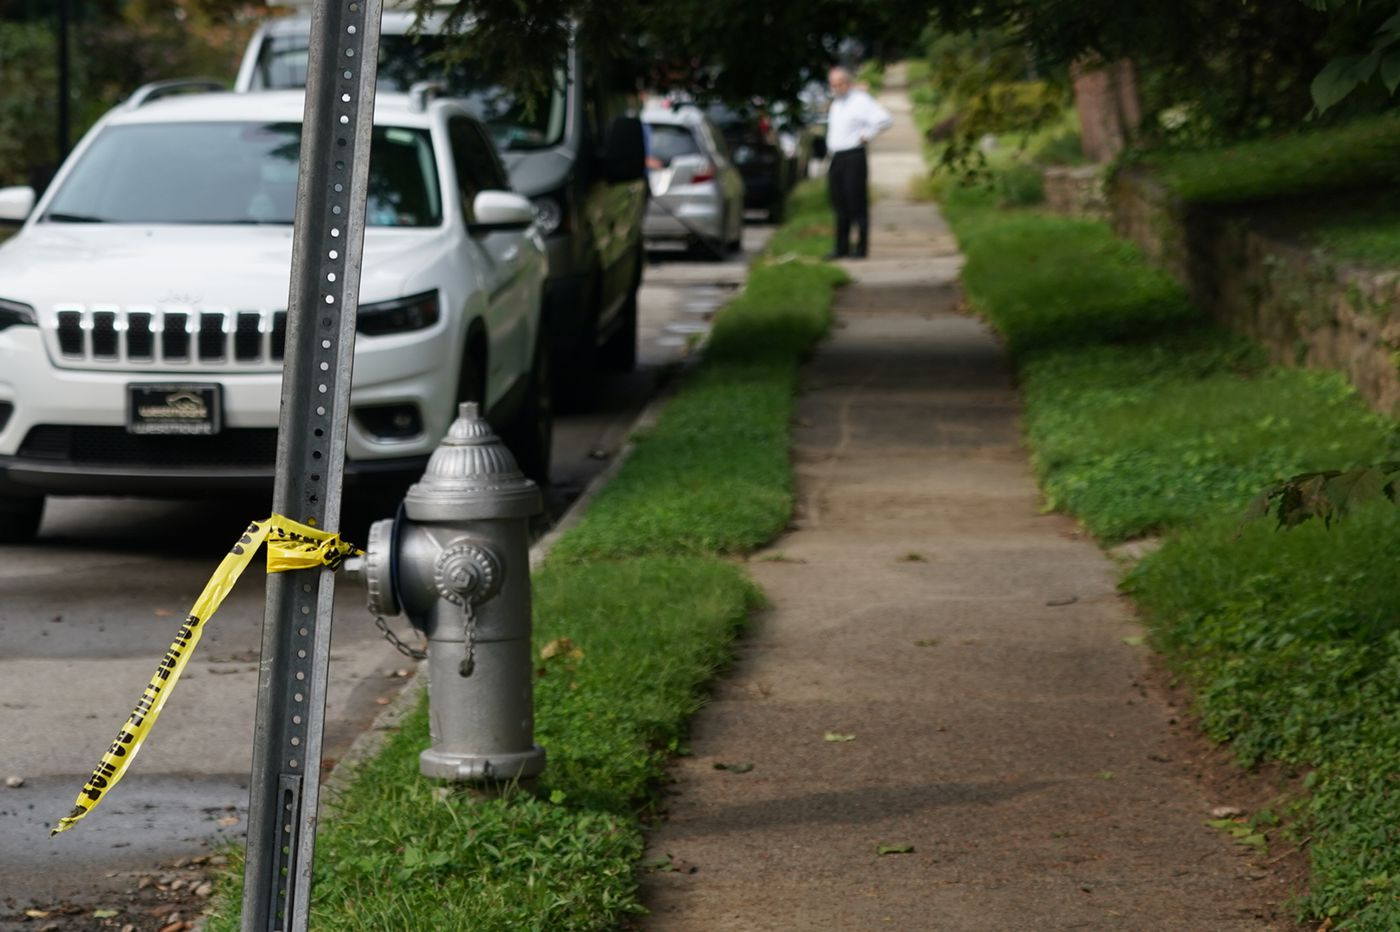 Man found dead in Wynnewood was murdered, authorities say